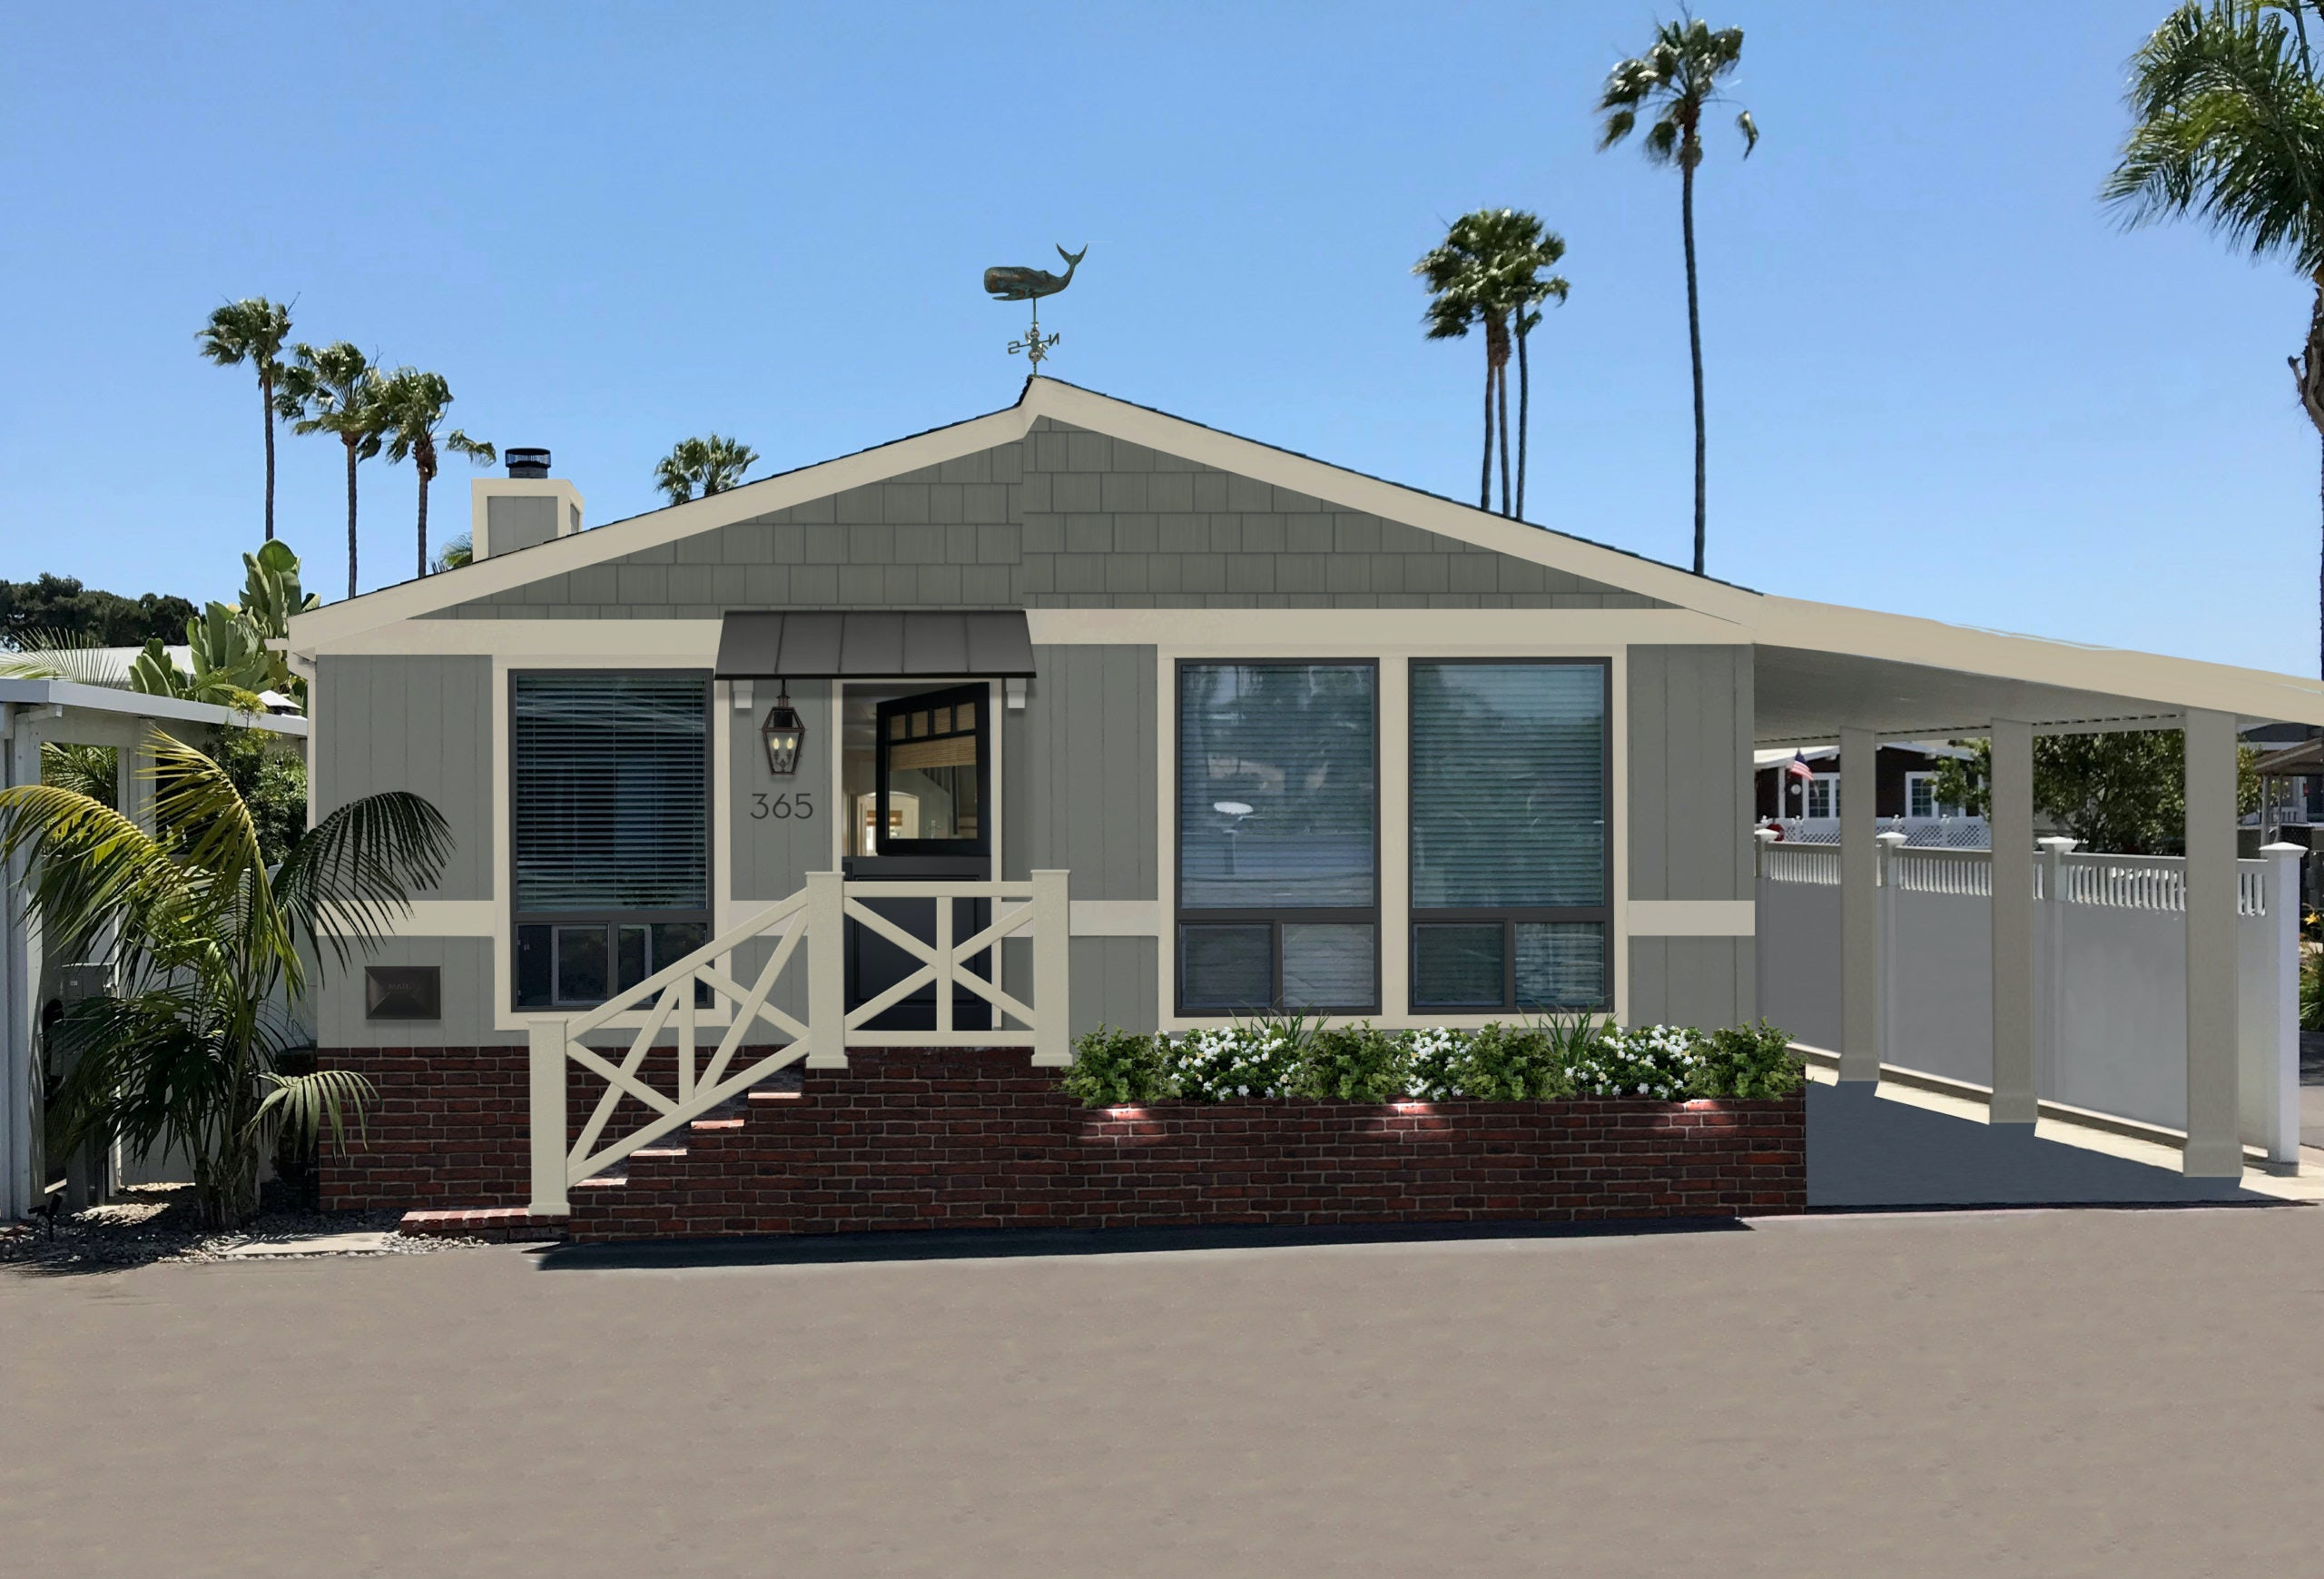 Newport Beach bungalow with Dutch door